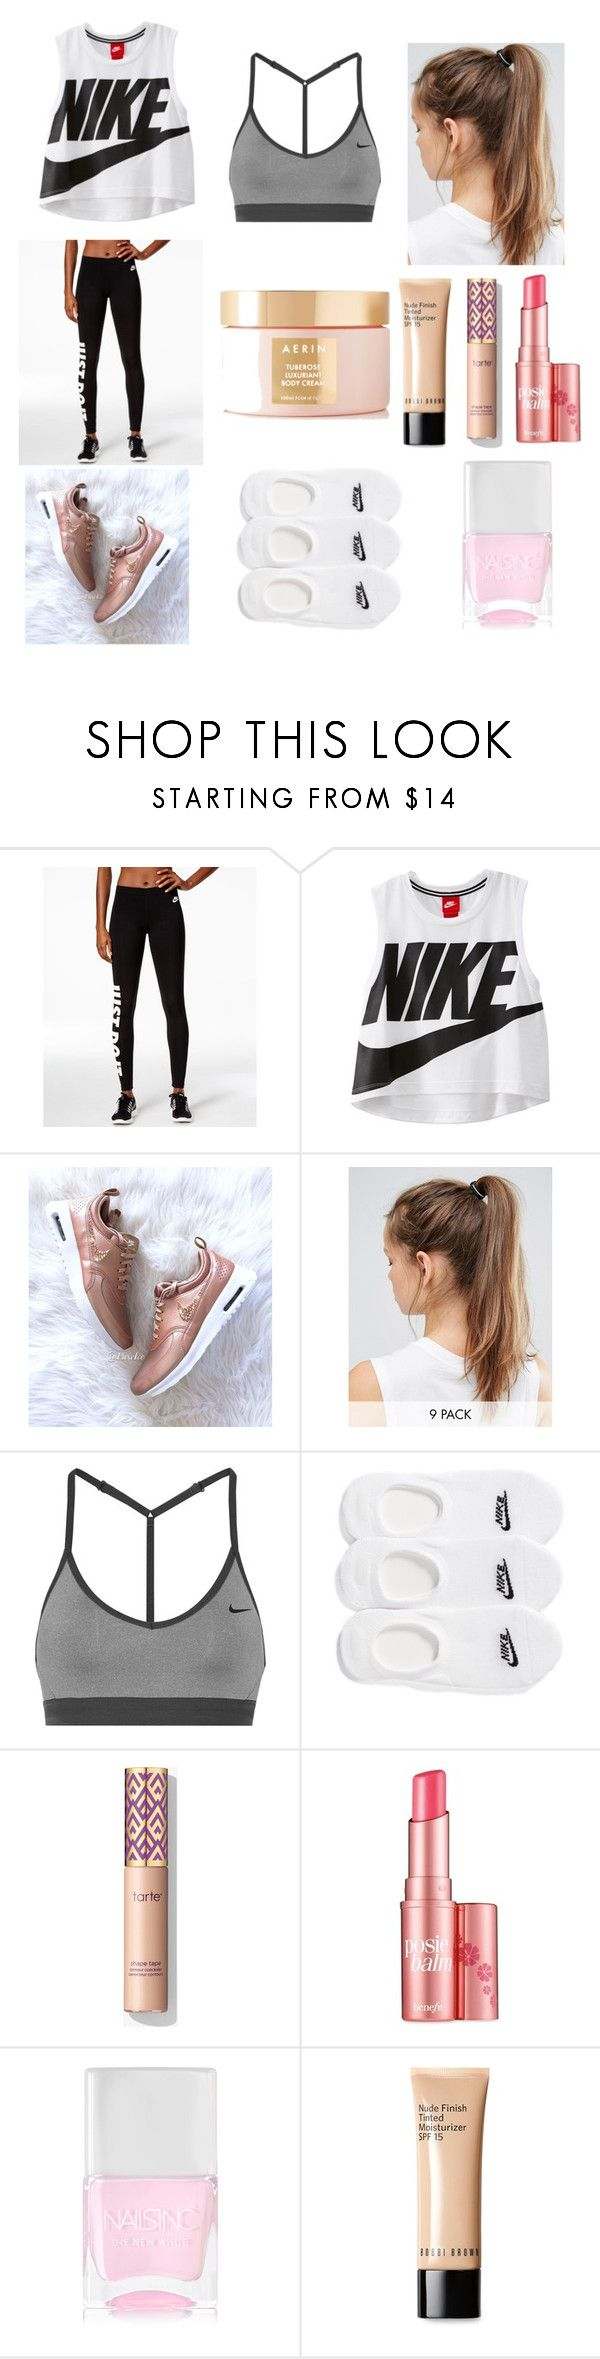 """""""Nike Workout Outfit"""" by indiac-joseph on Polyvore featuring NIKE, Benefit, Nails Inc., Bobbi Brown Cosmetics and AERIN"""